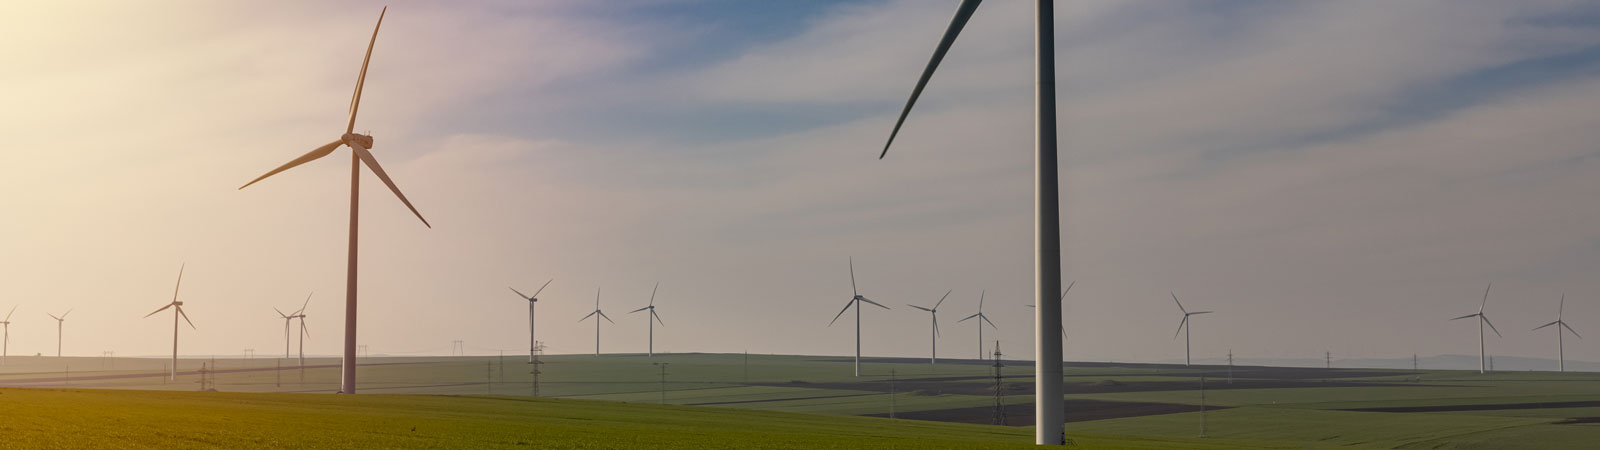 Green Energy - Field and Wind Turbines at Sunset